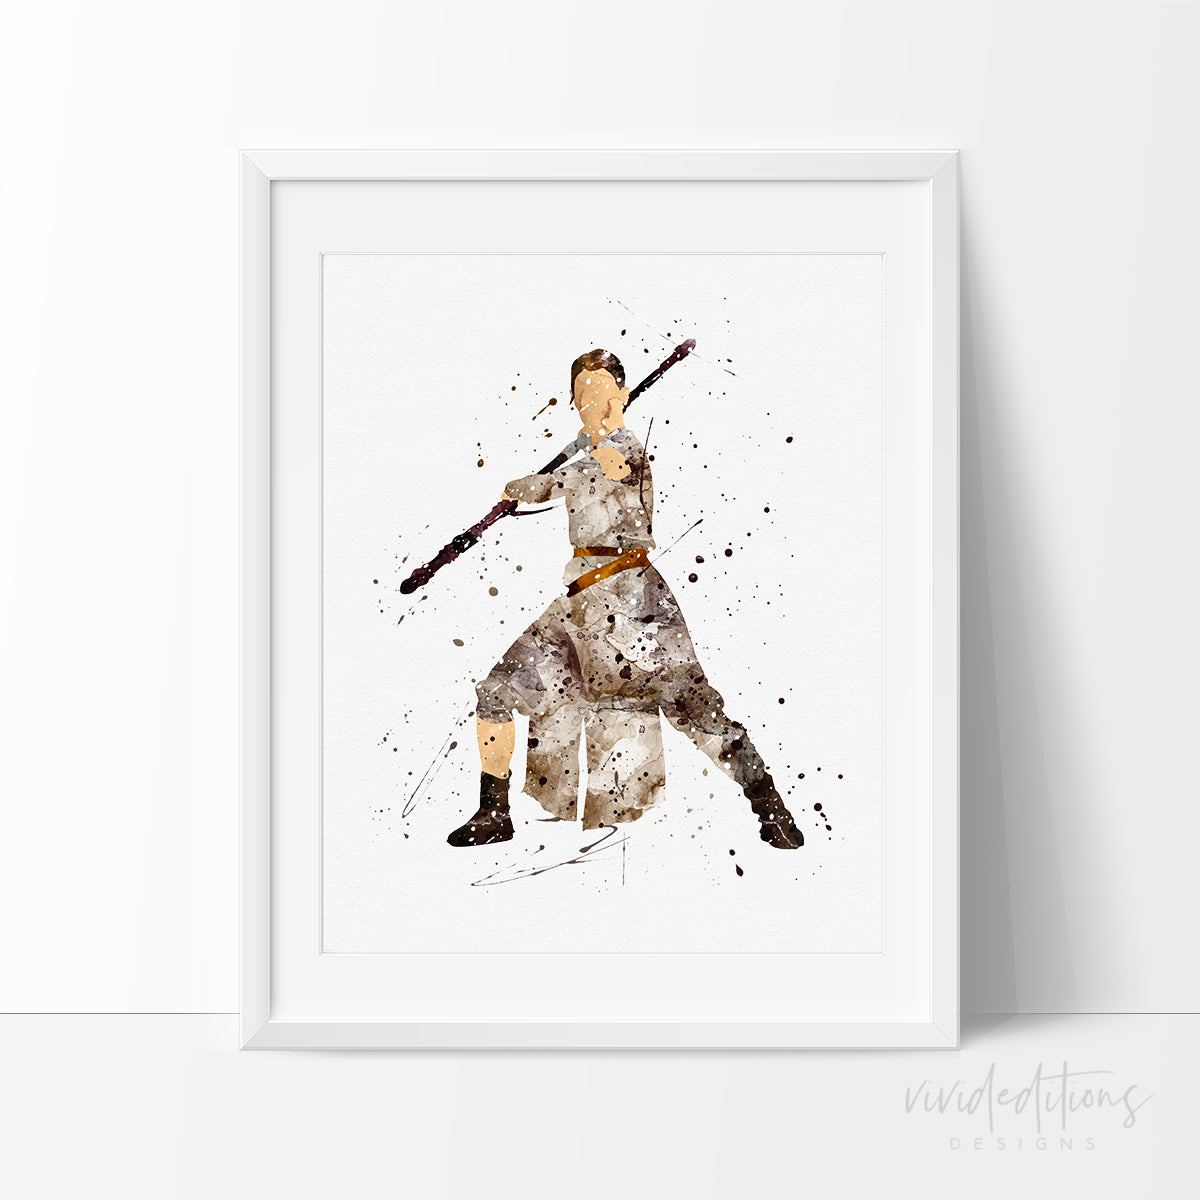 Rey Star Wars Watercolor Art Print Art Print - VIVIDEDITIONS